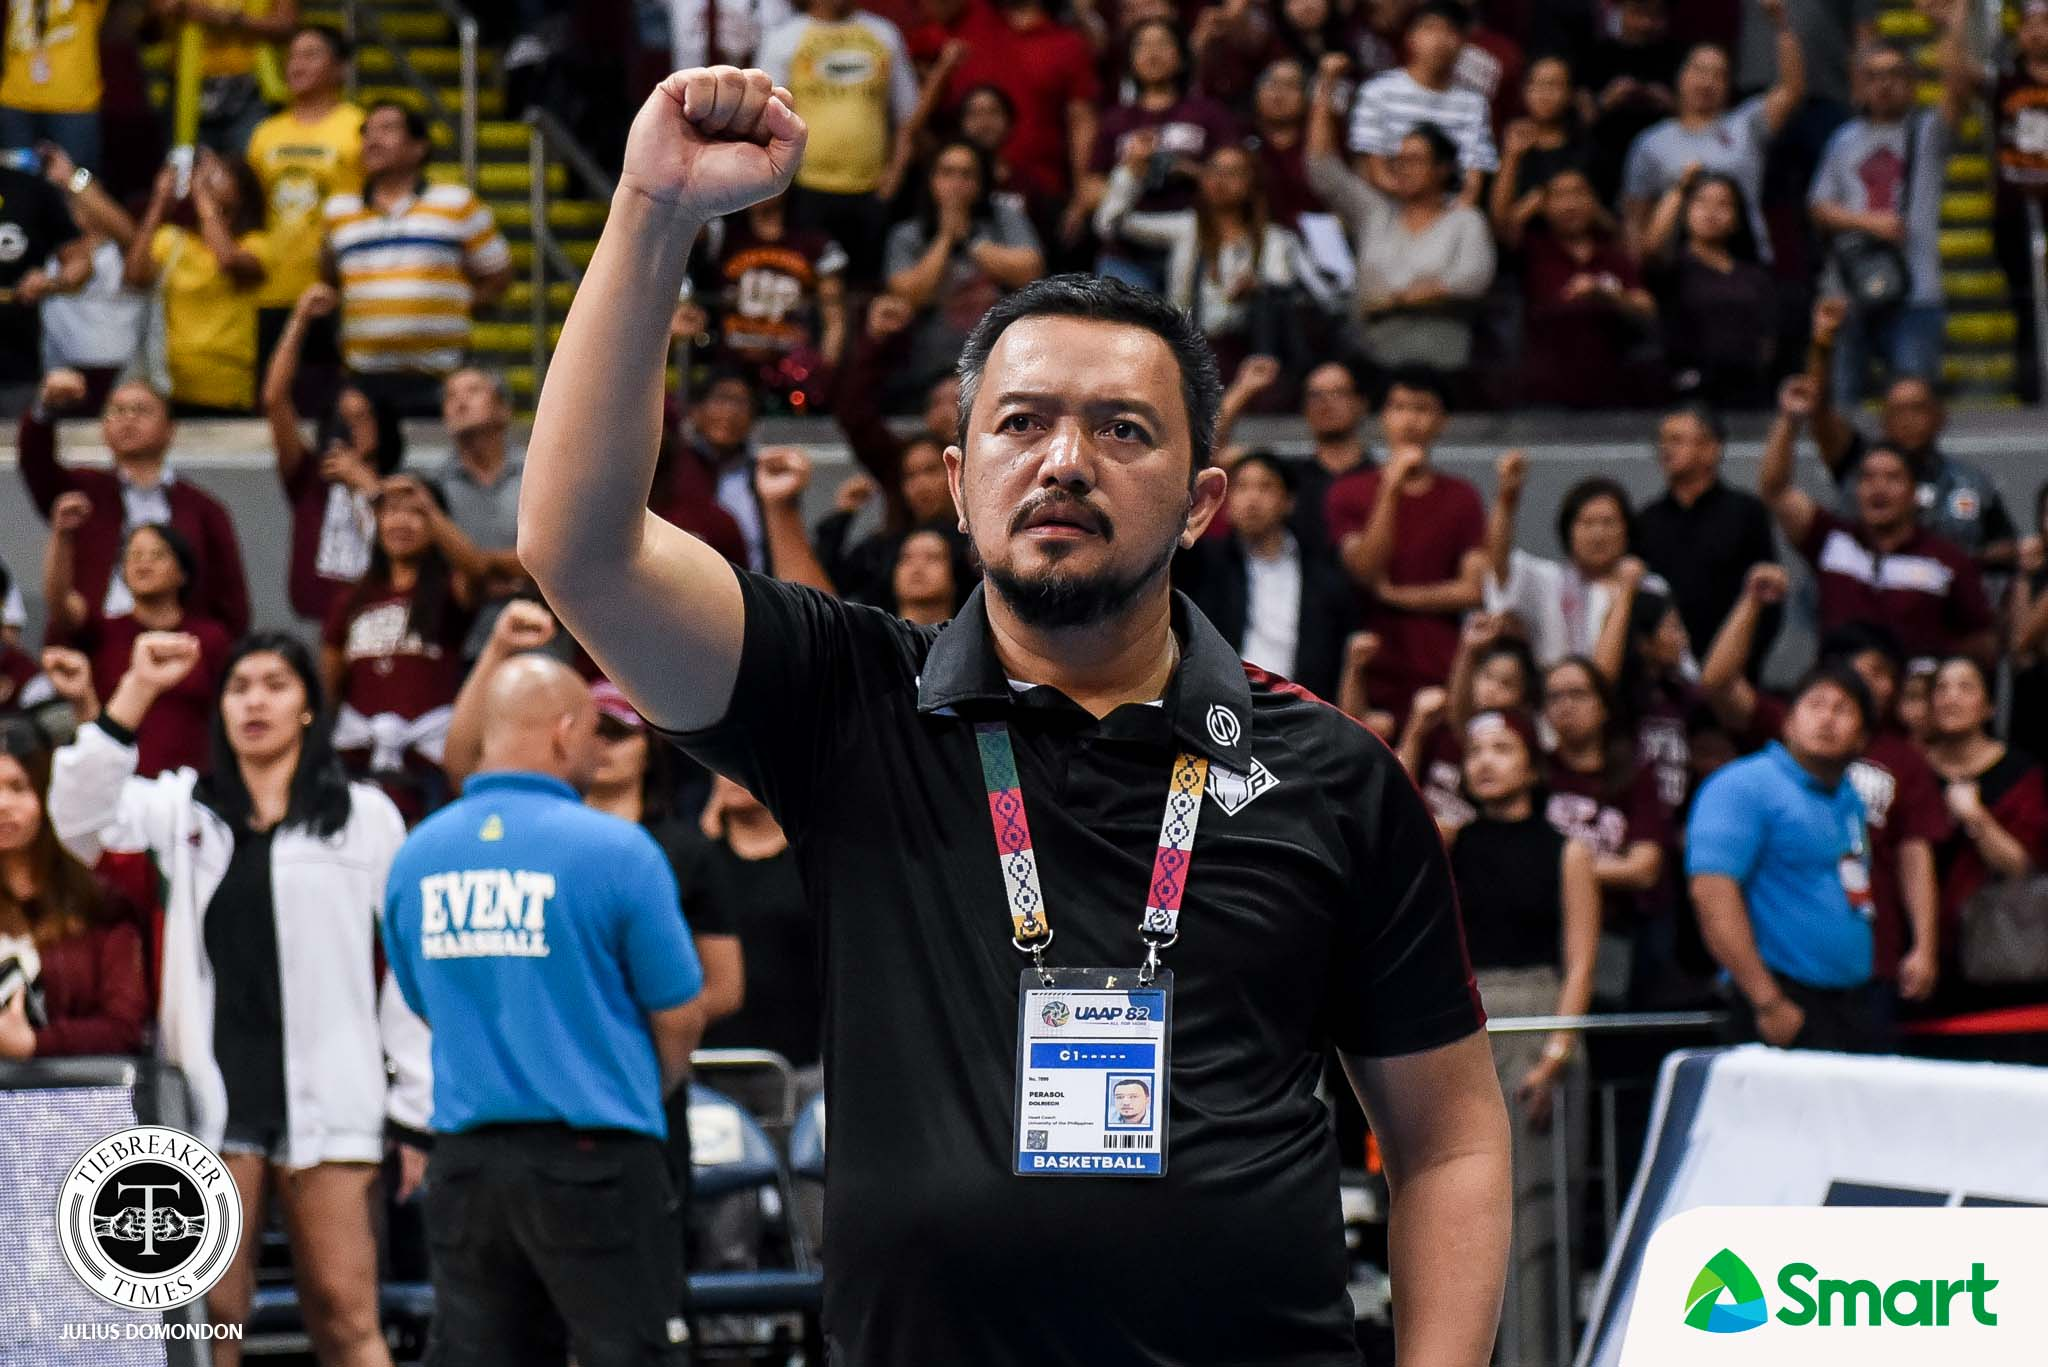 Tiebreaker Times Bo Perasol hopes UP program continues with or without him Basketball News UAAP UP  UP Men's Basketball UAAP Season 82 Men's Basketball UAAP Season 82 Bo Perasol